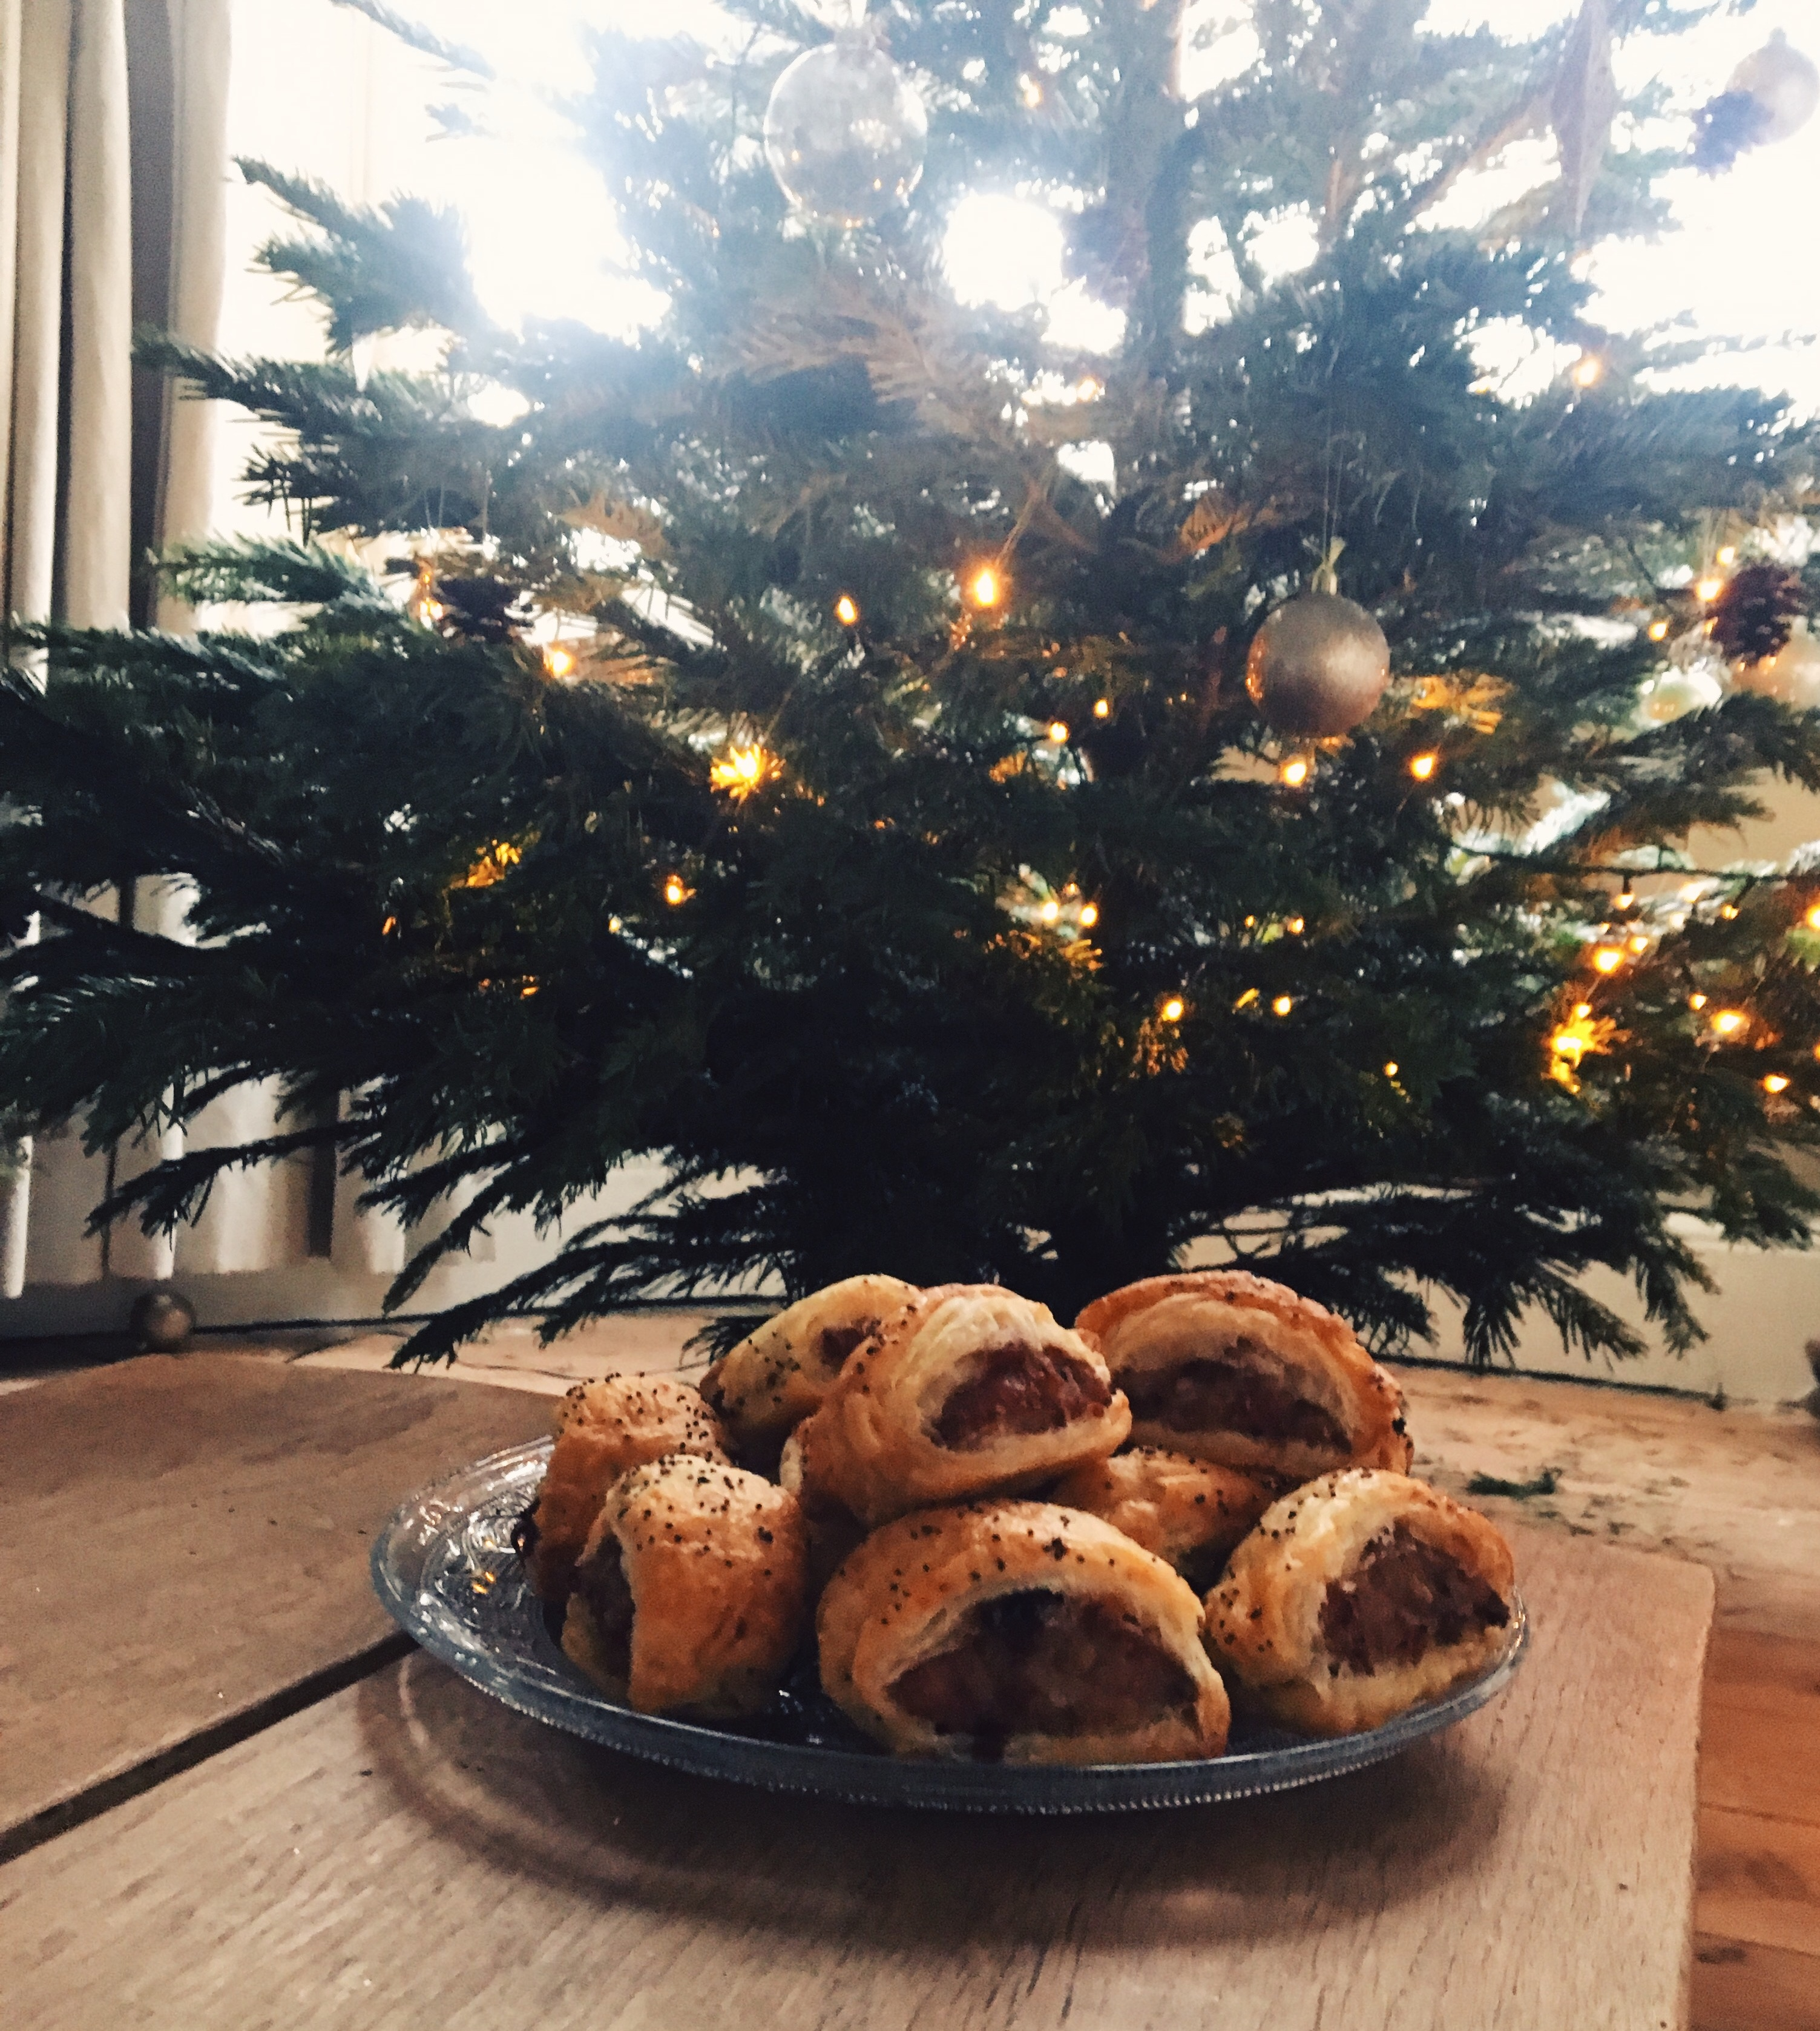 Sausage rolls infront of the Christmas tree